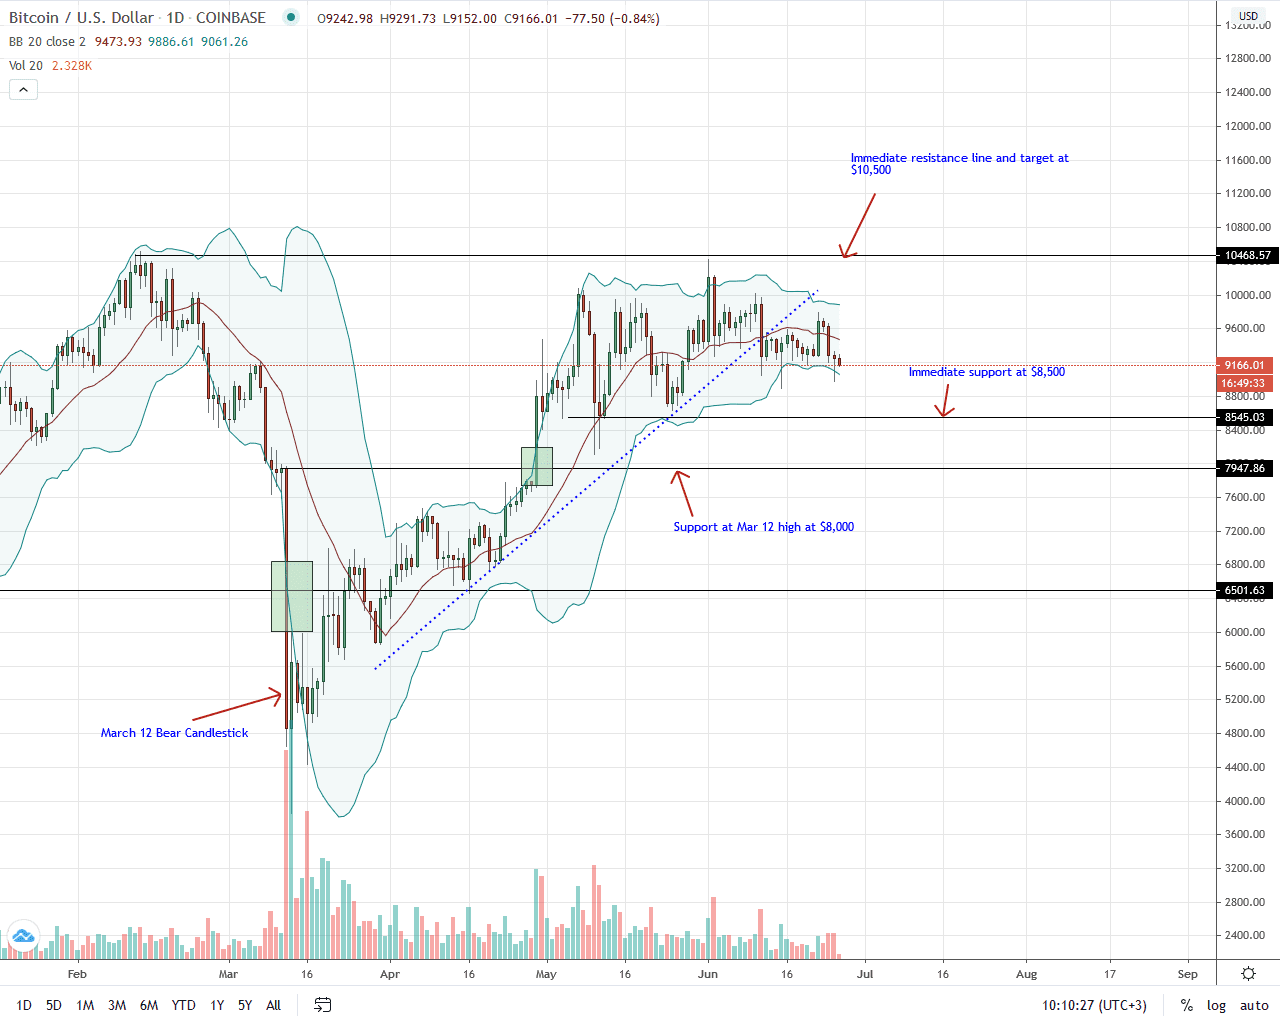 Bitcoin Daily Chart for June 26, 2020